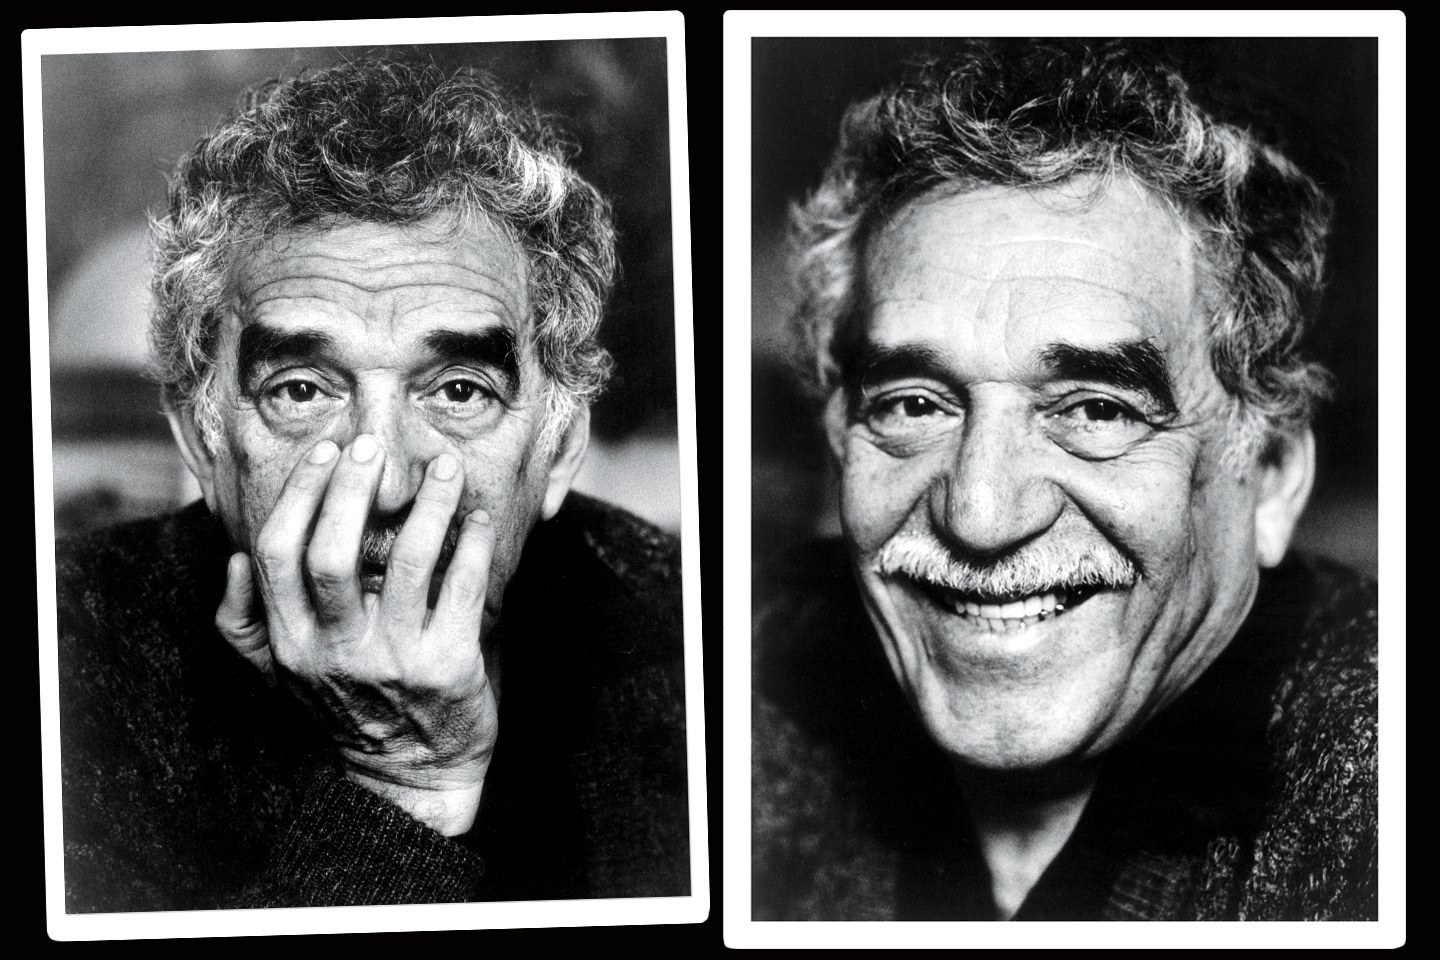 50-years-of-solitude-100-anniversary-gabriel-garcia-marquez